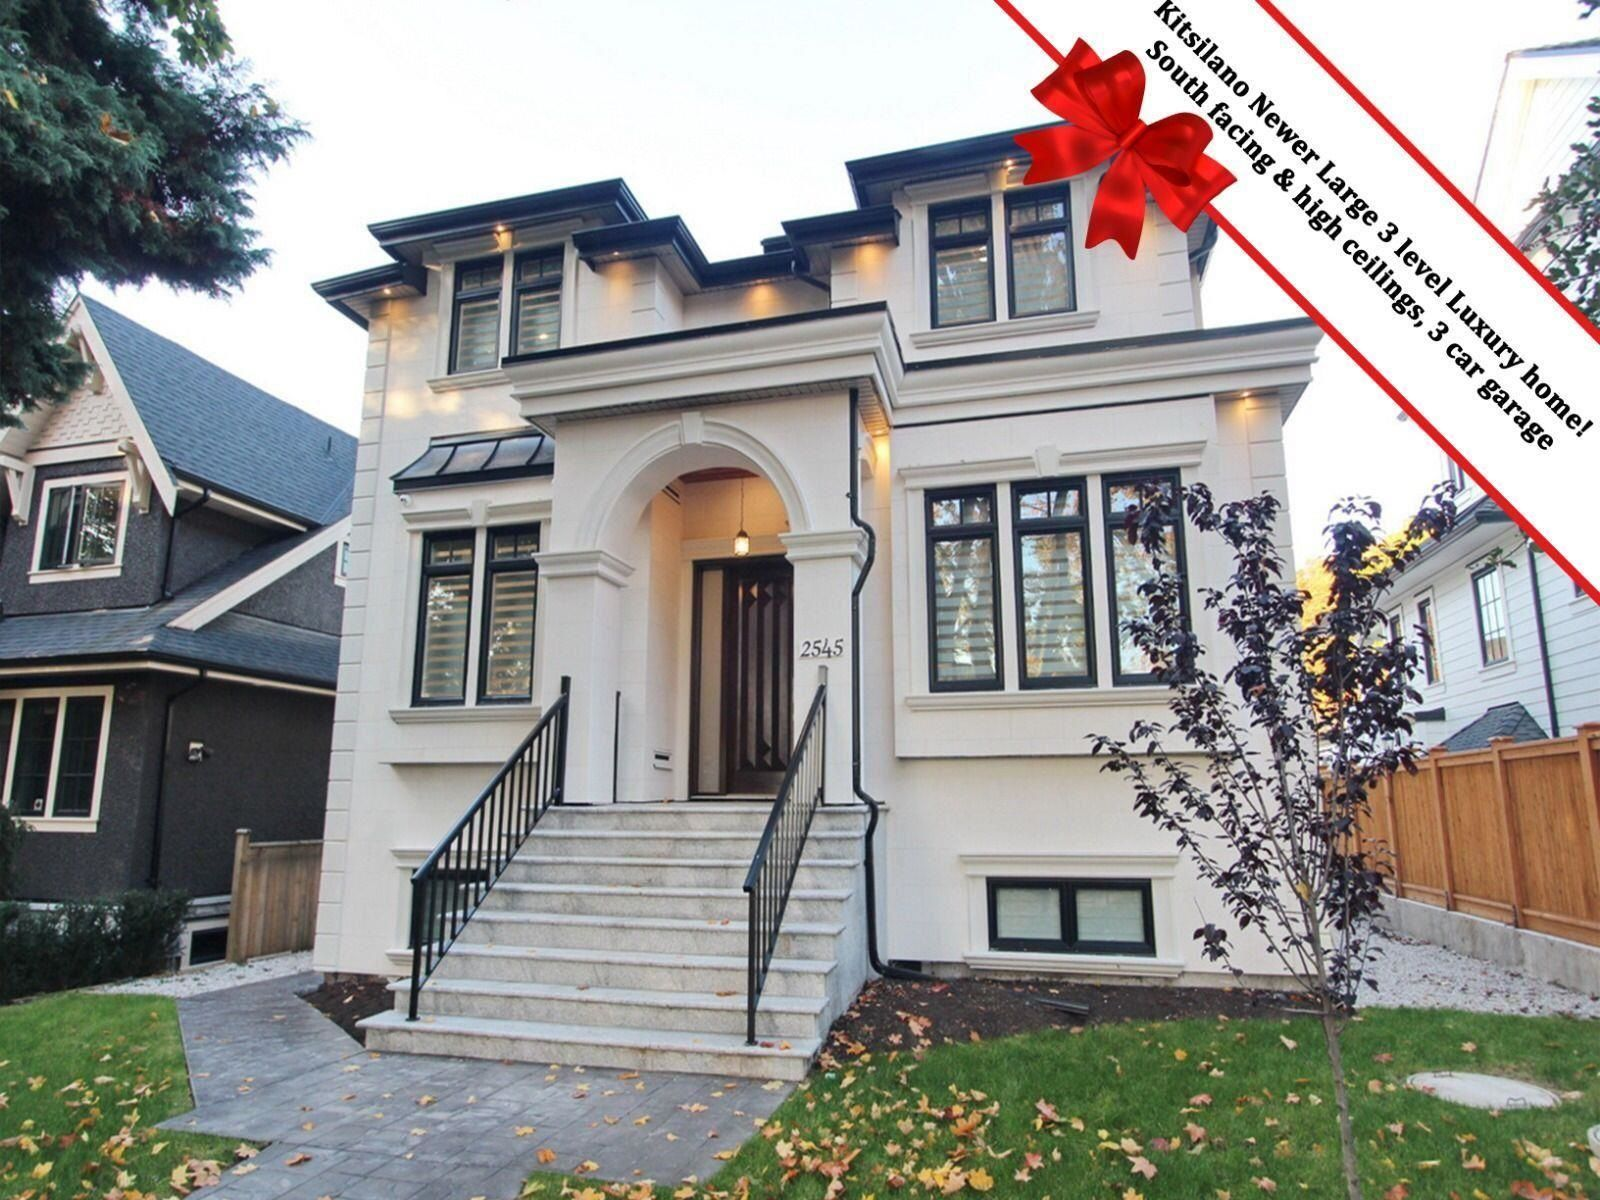 Main Photo: 2545 W 15TH Avenue in Vancouver: Kitsilano House for sale (Vancouver West)  : MLS®# R2617857